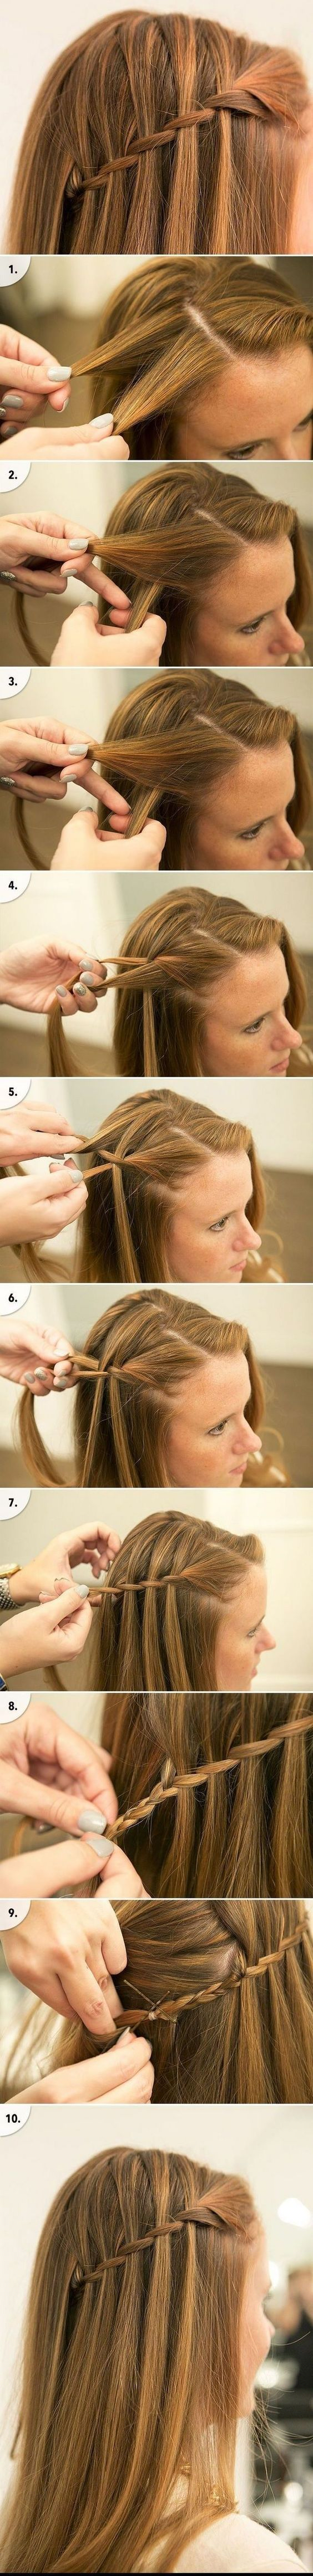 Get Gorgeous Hair With These Easy Step by Step Hair Tutorials